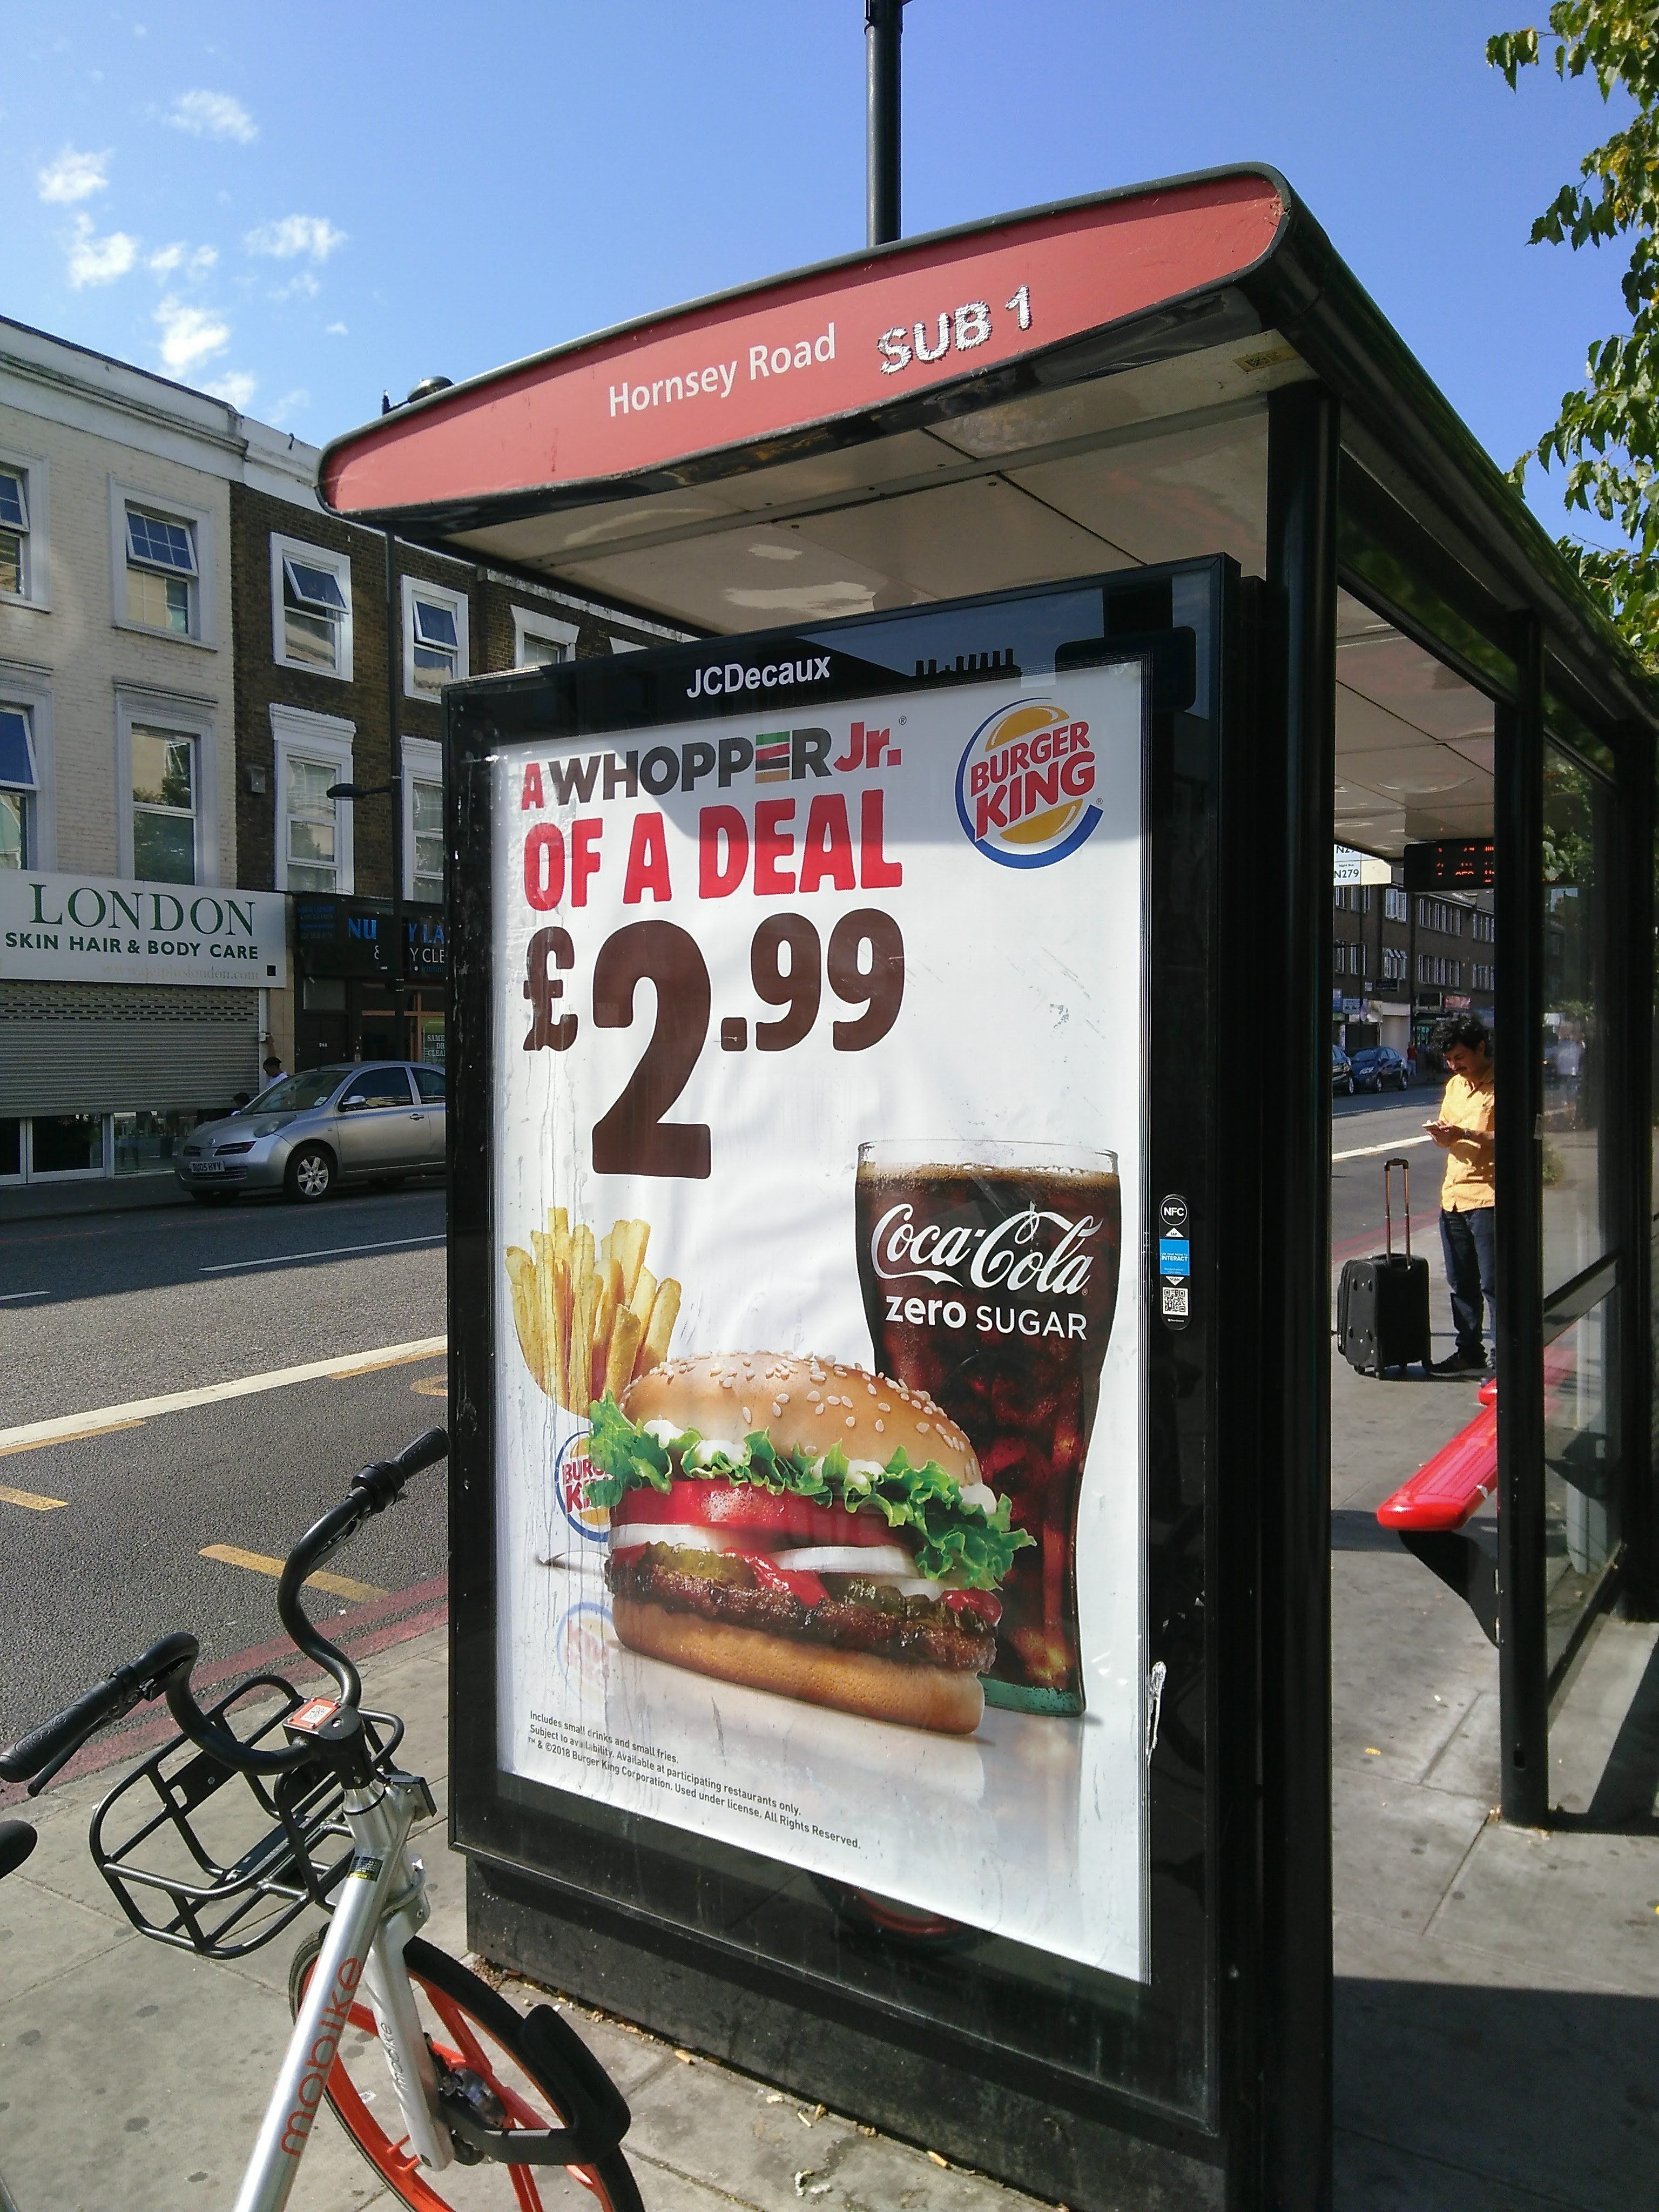 COMPLAINTS: McDonald's And Burger King Ads Banned For 'Inappropriately' Targeting School Bus